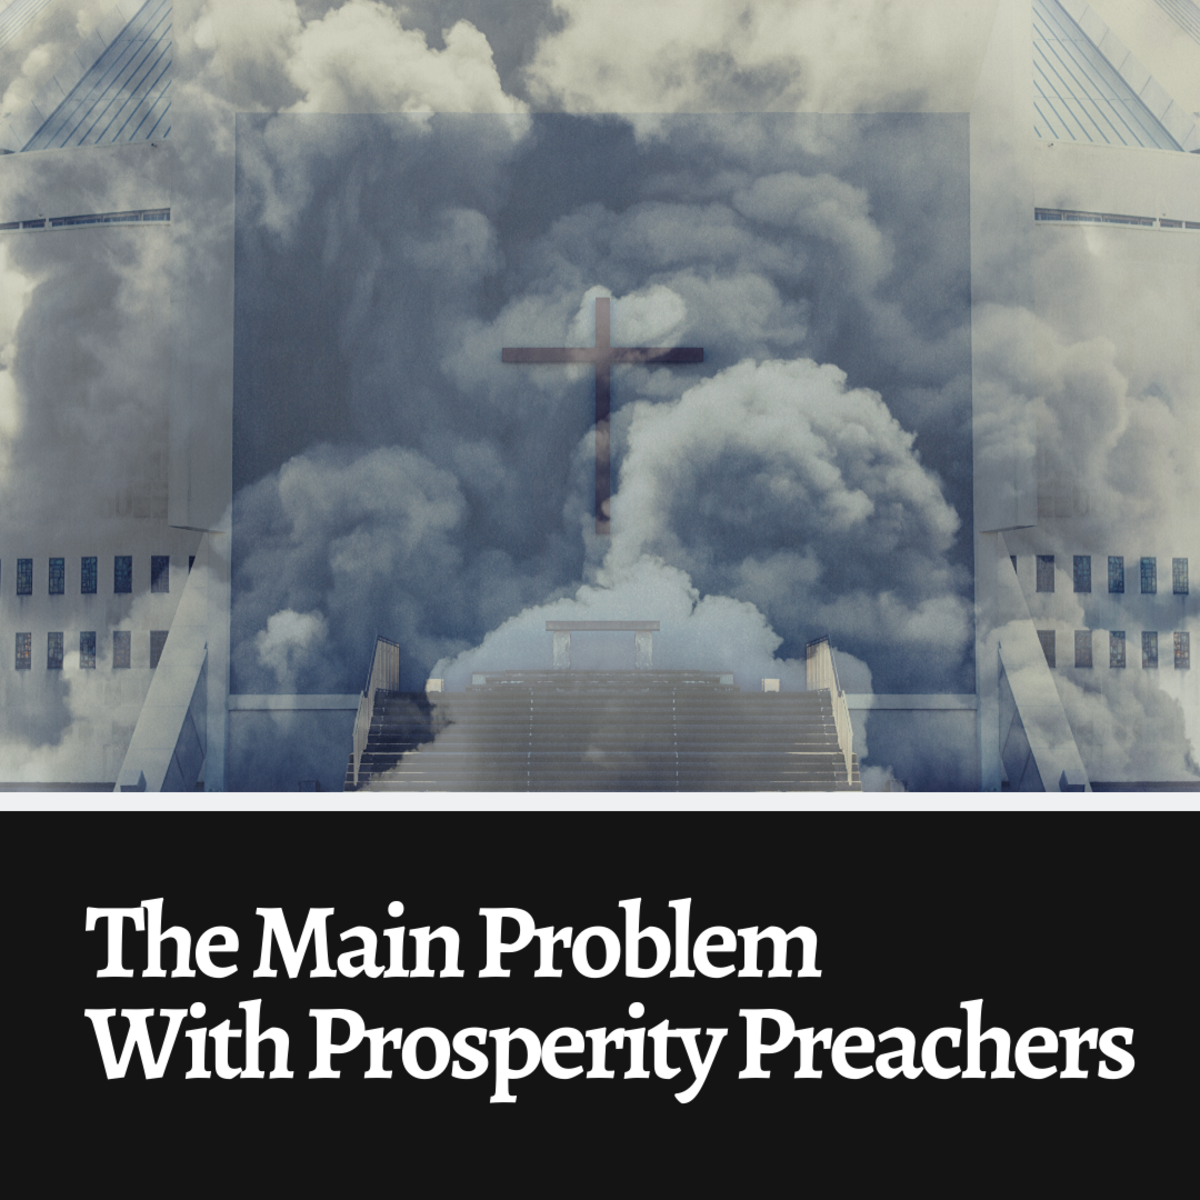 Prosperity preachers are misusing partnering to take advantage of people.